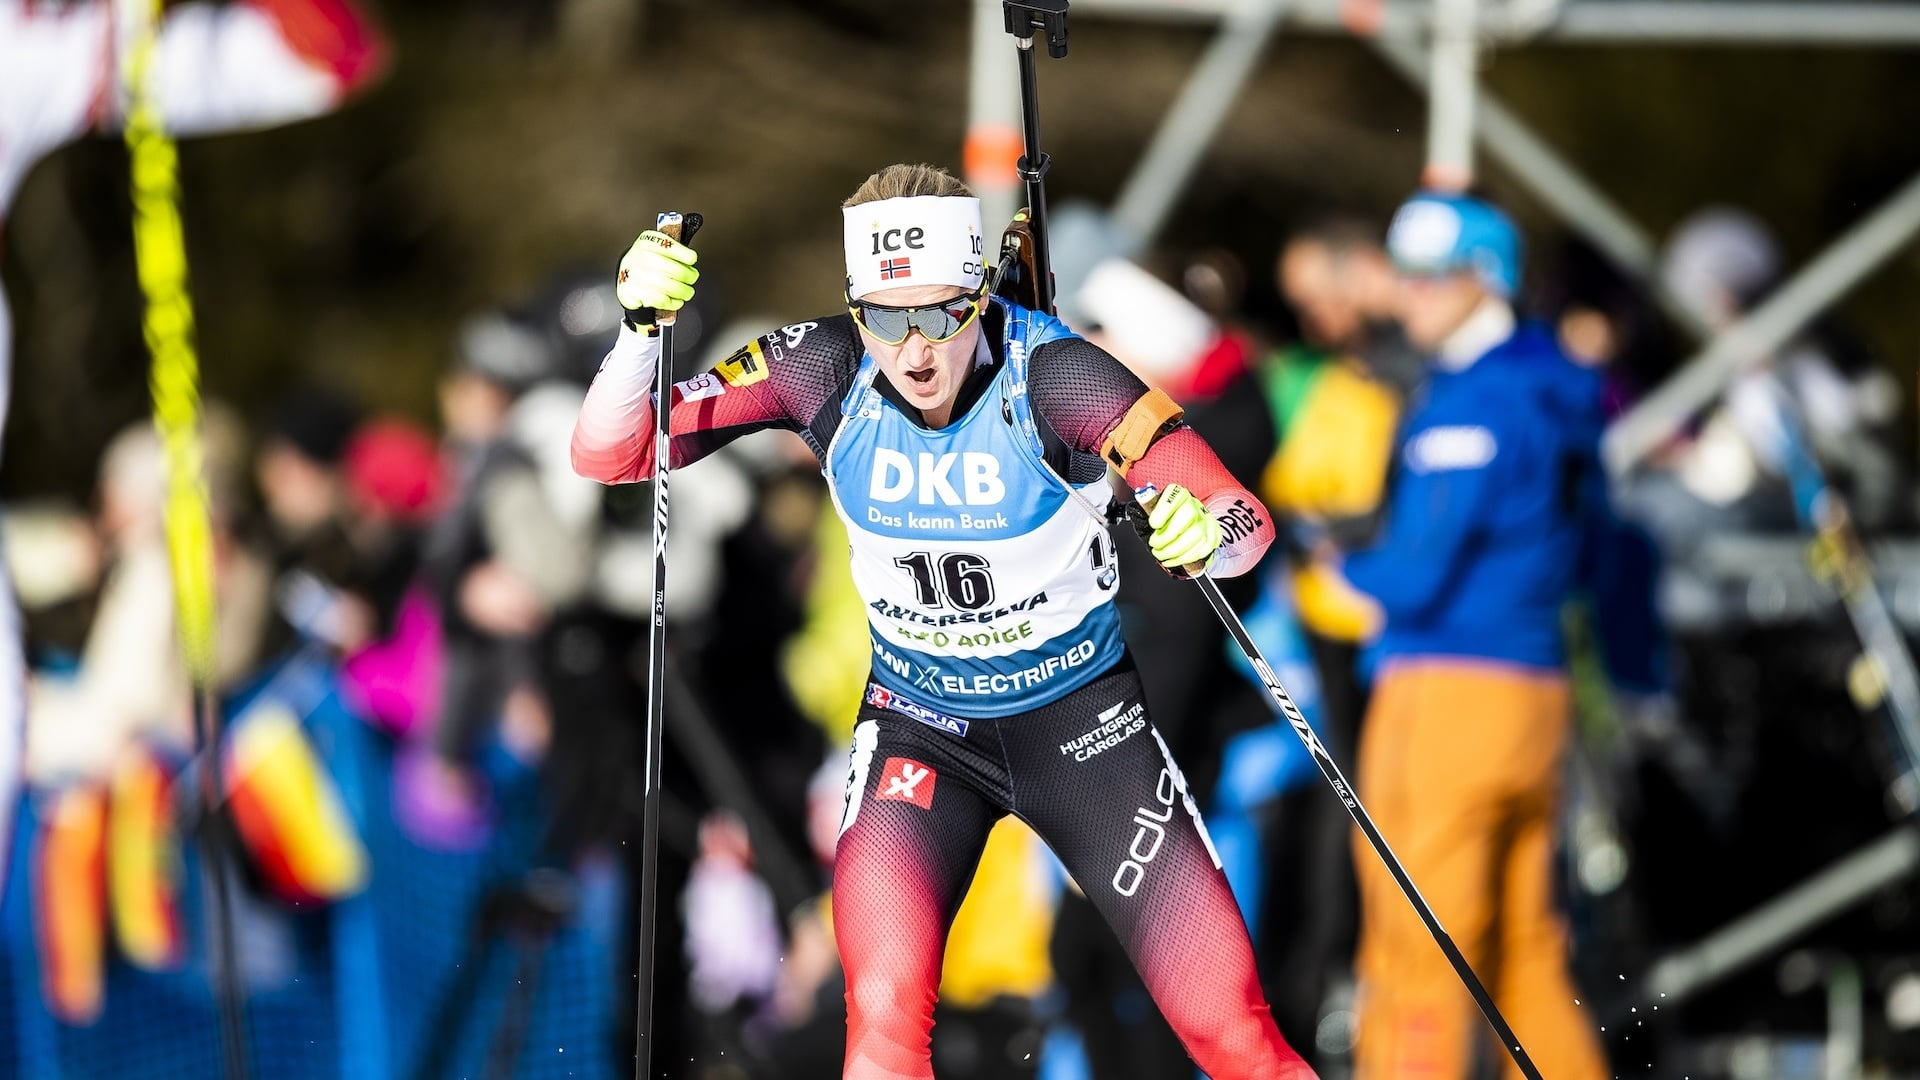 14.02.2020 - Norway's Røiseland wins second Gold for the country